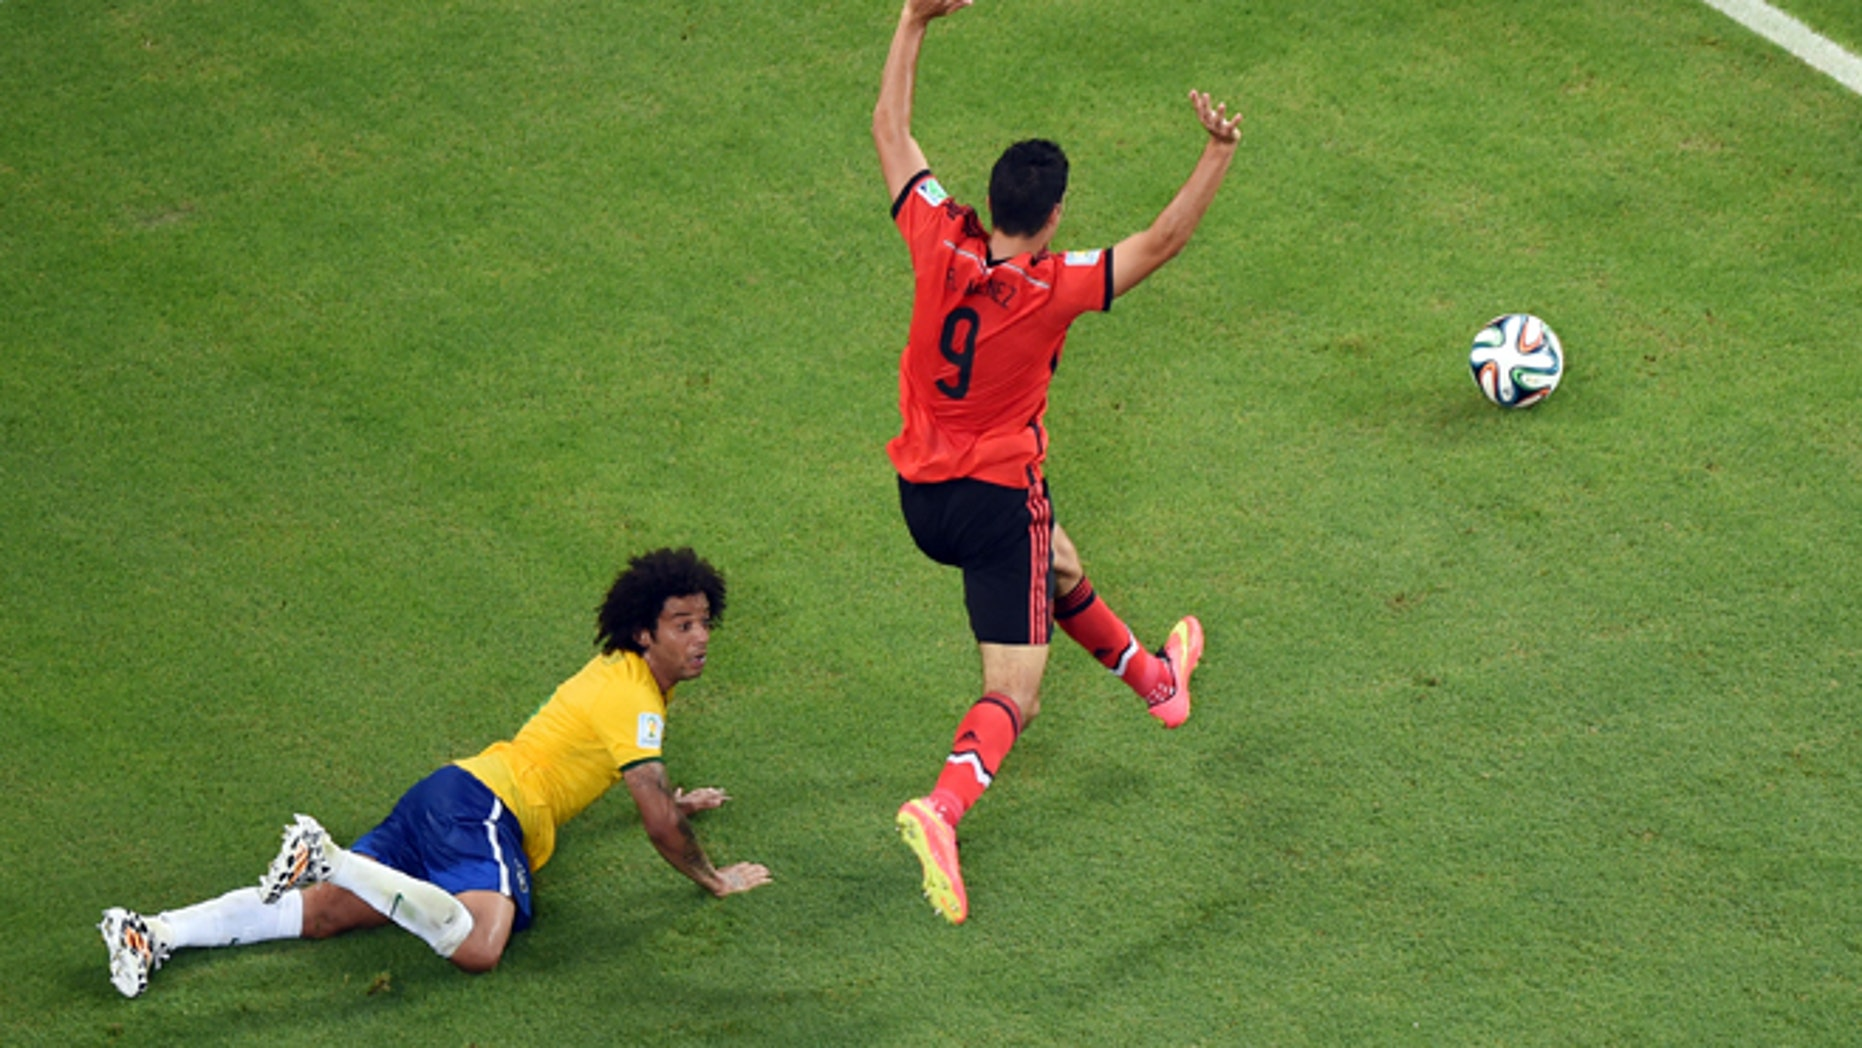 June 17, 2014: Brazil's Marcelo falls in the penalty box as Mexico's Raul Jimenez raises his arms during the group A World Cup soccer match between Brazil and Mexico at the Arena Castelao in Fortaleza, Brazil.